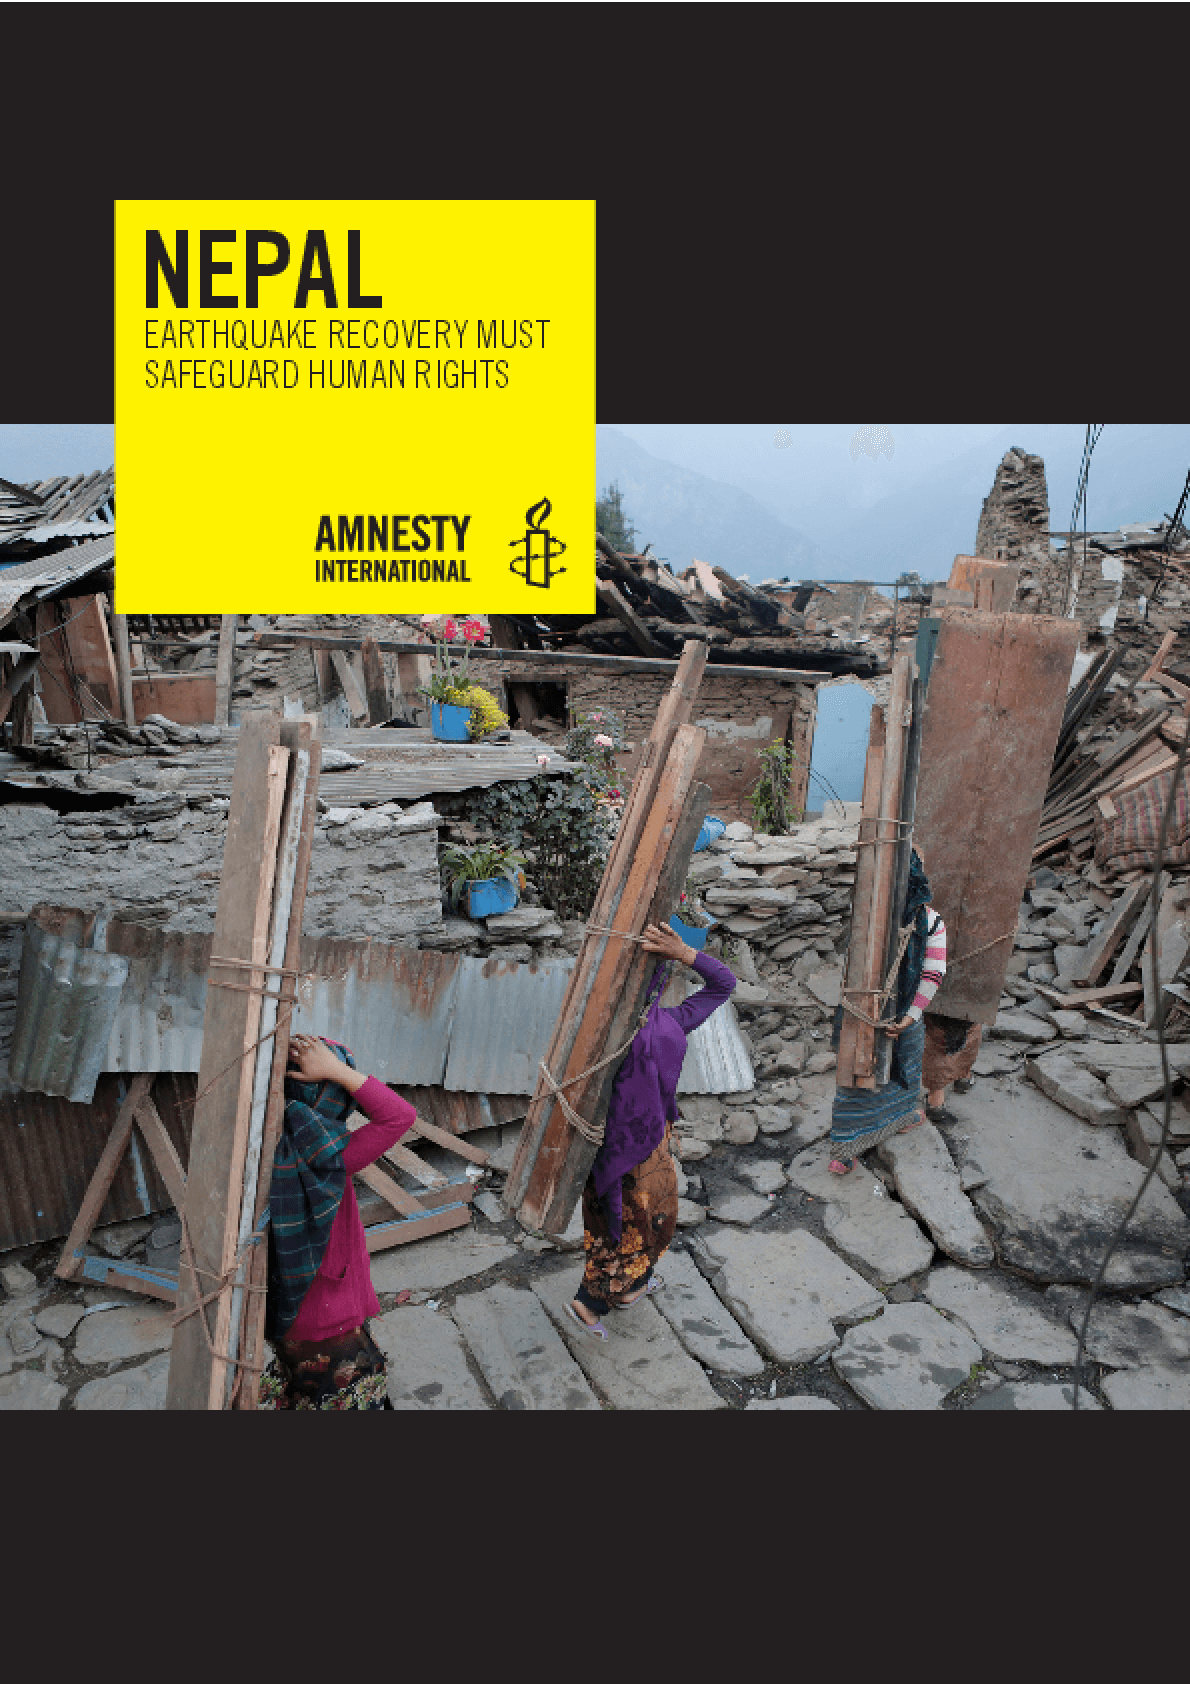 Nepal: Earthquake Recovery Must Safeguard Human Rights